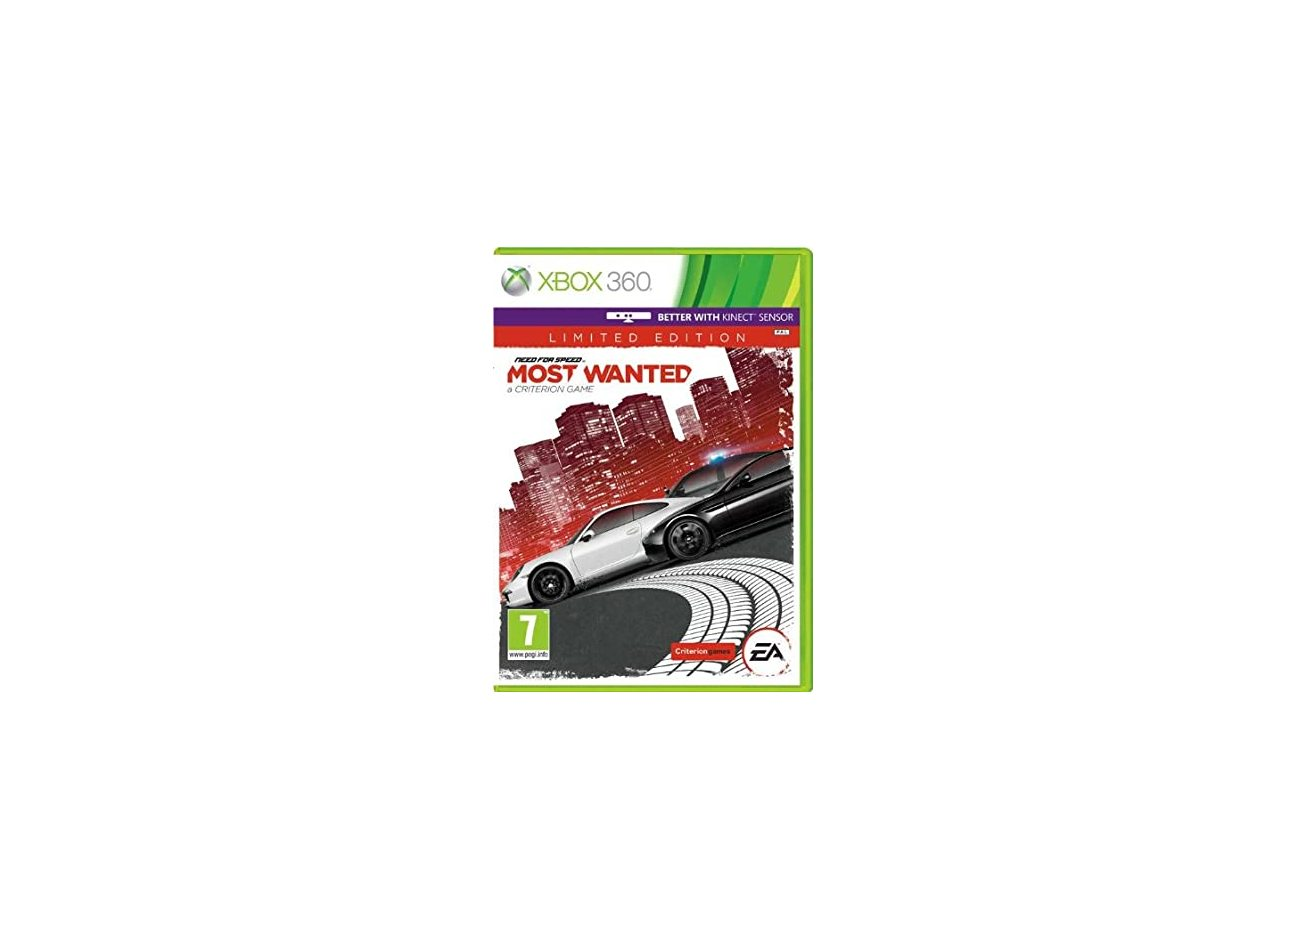 Xbox 360 Need for Speed: Most Wanted (2012) Xbox 360